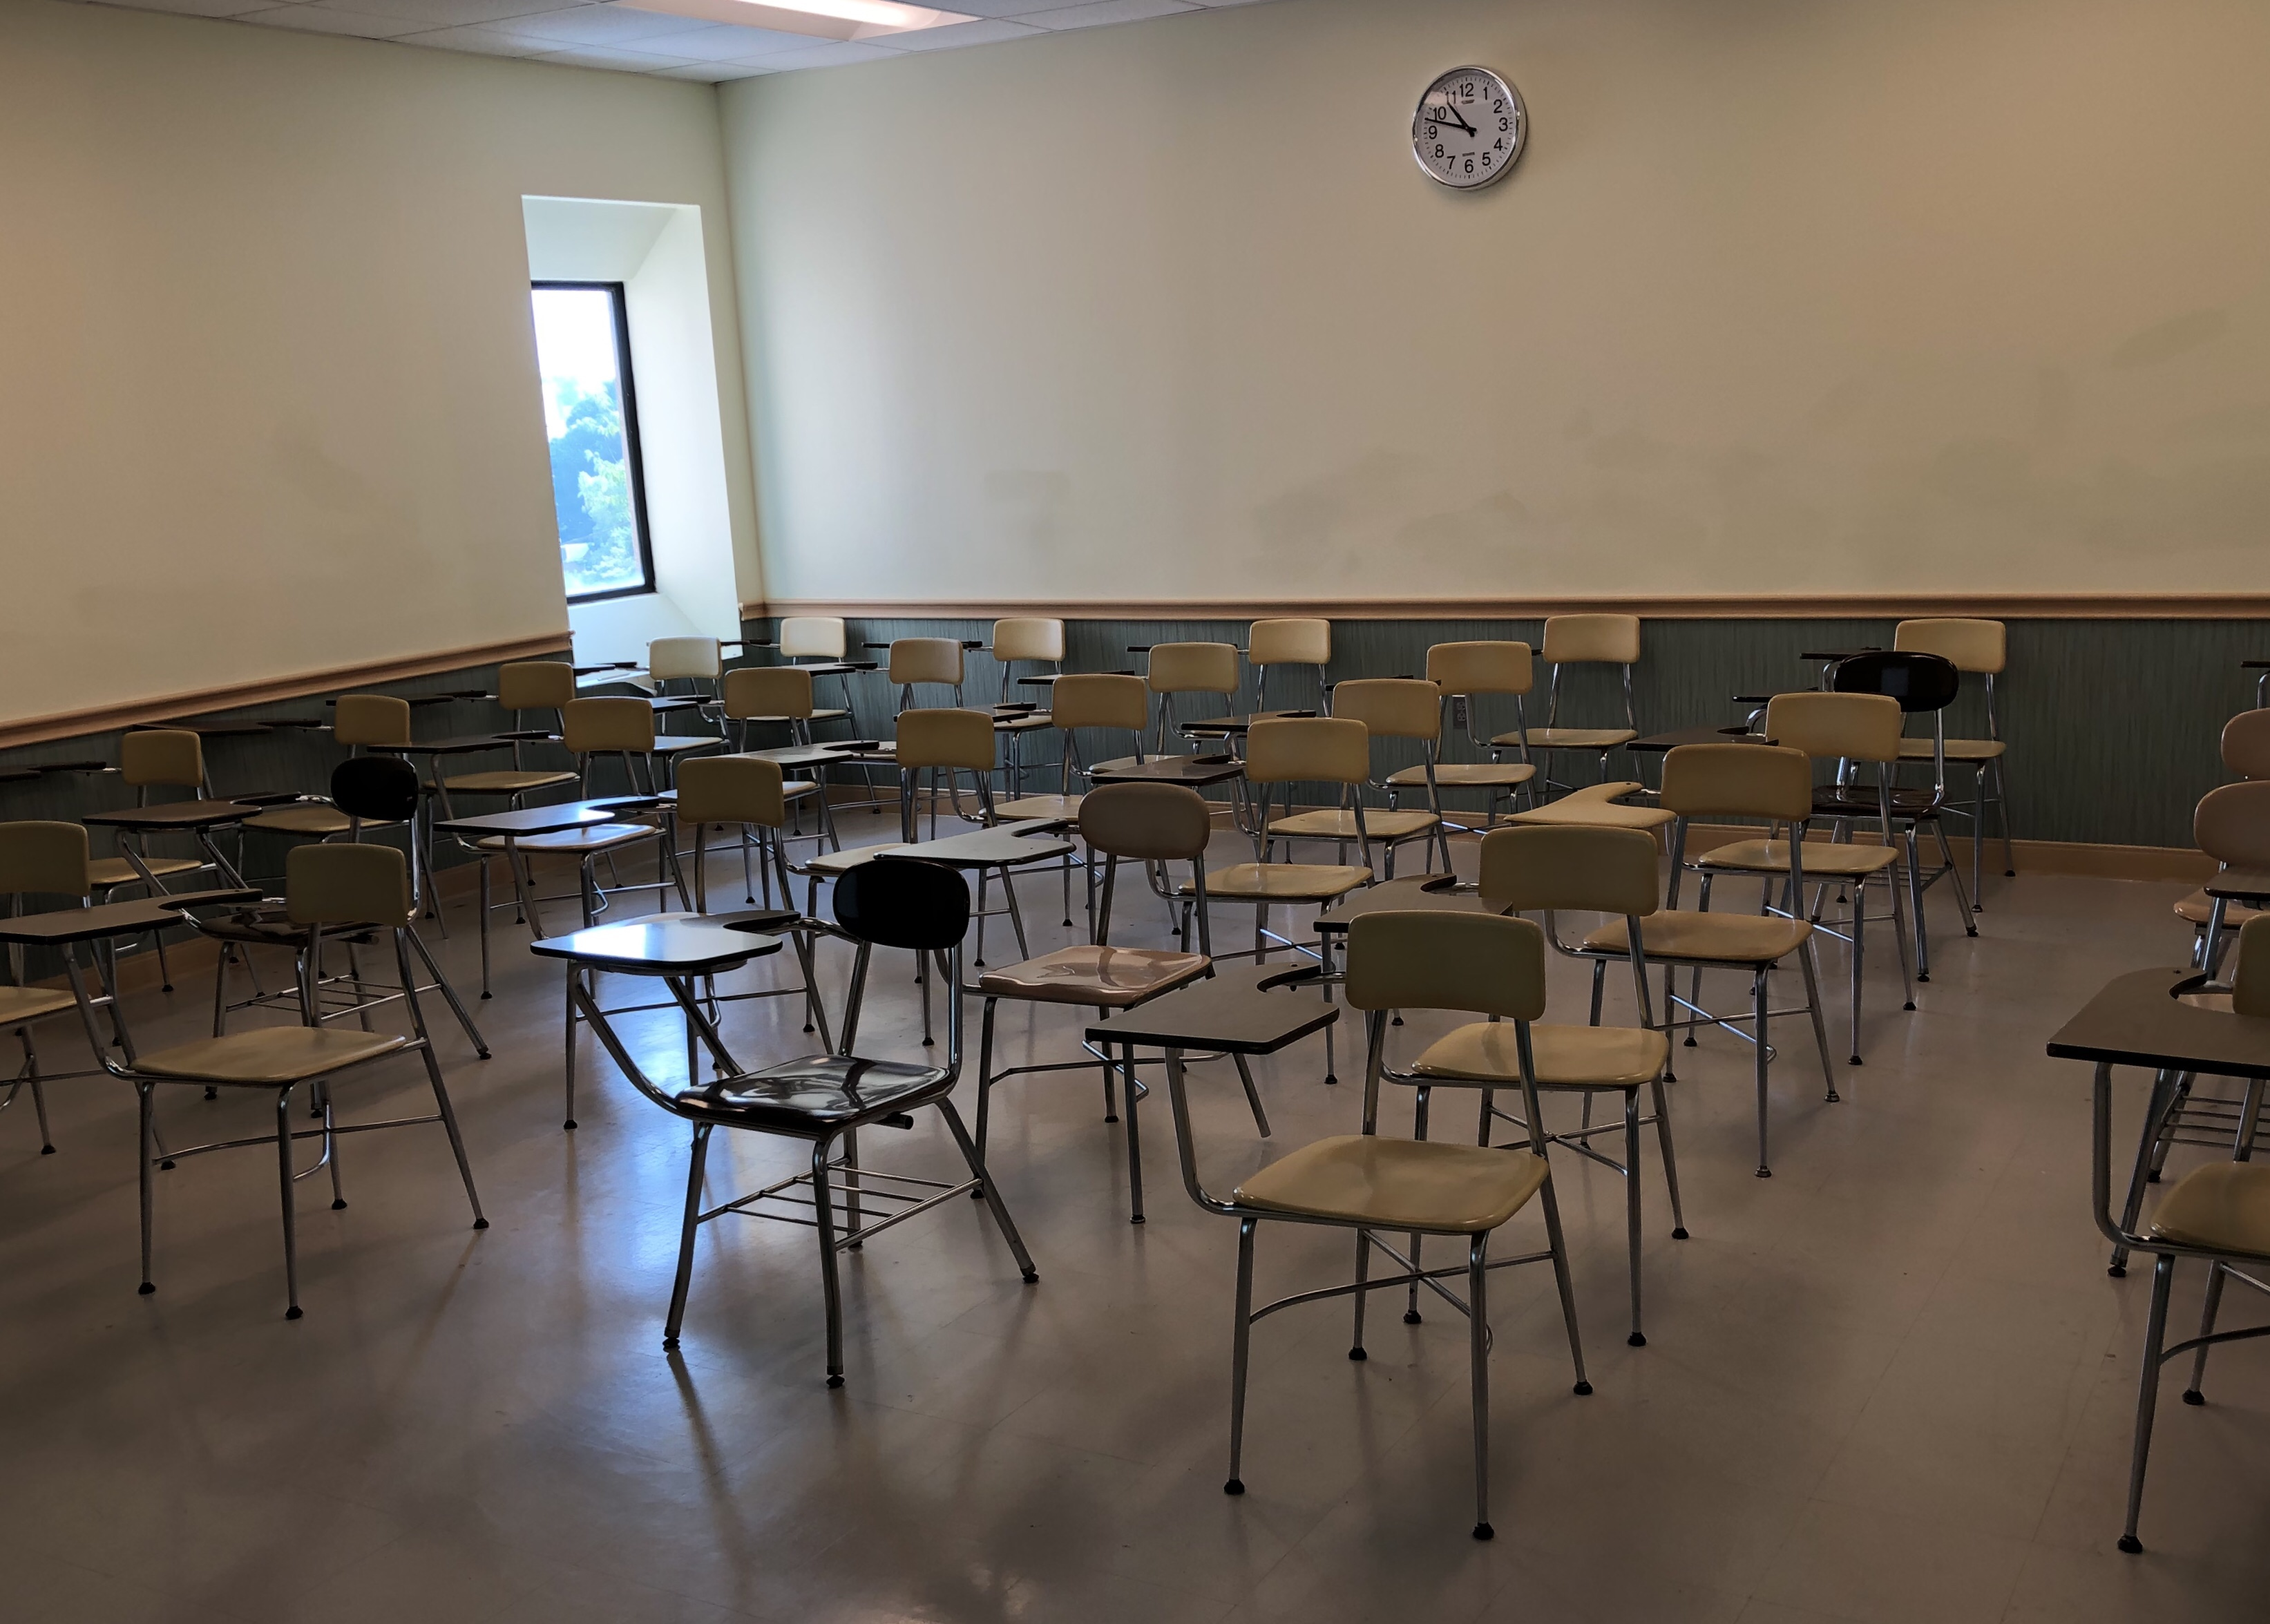 Desks in an empty classroom